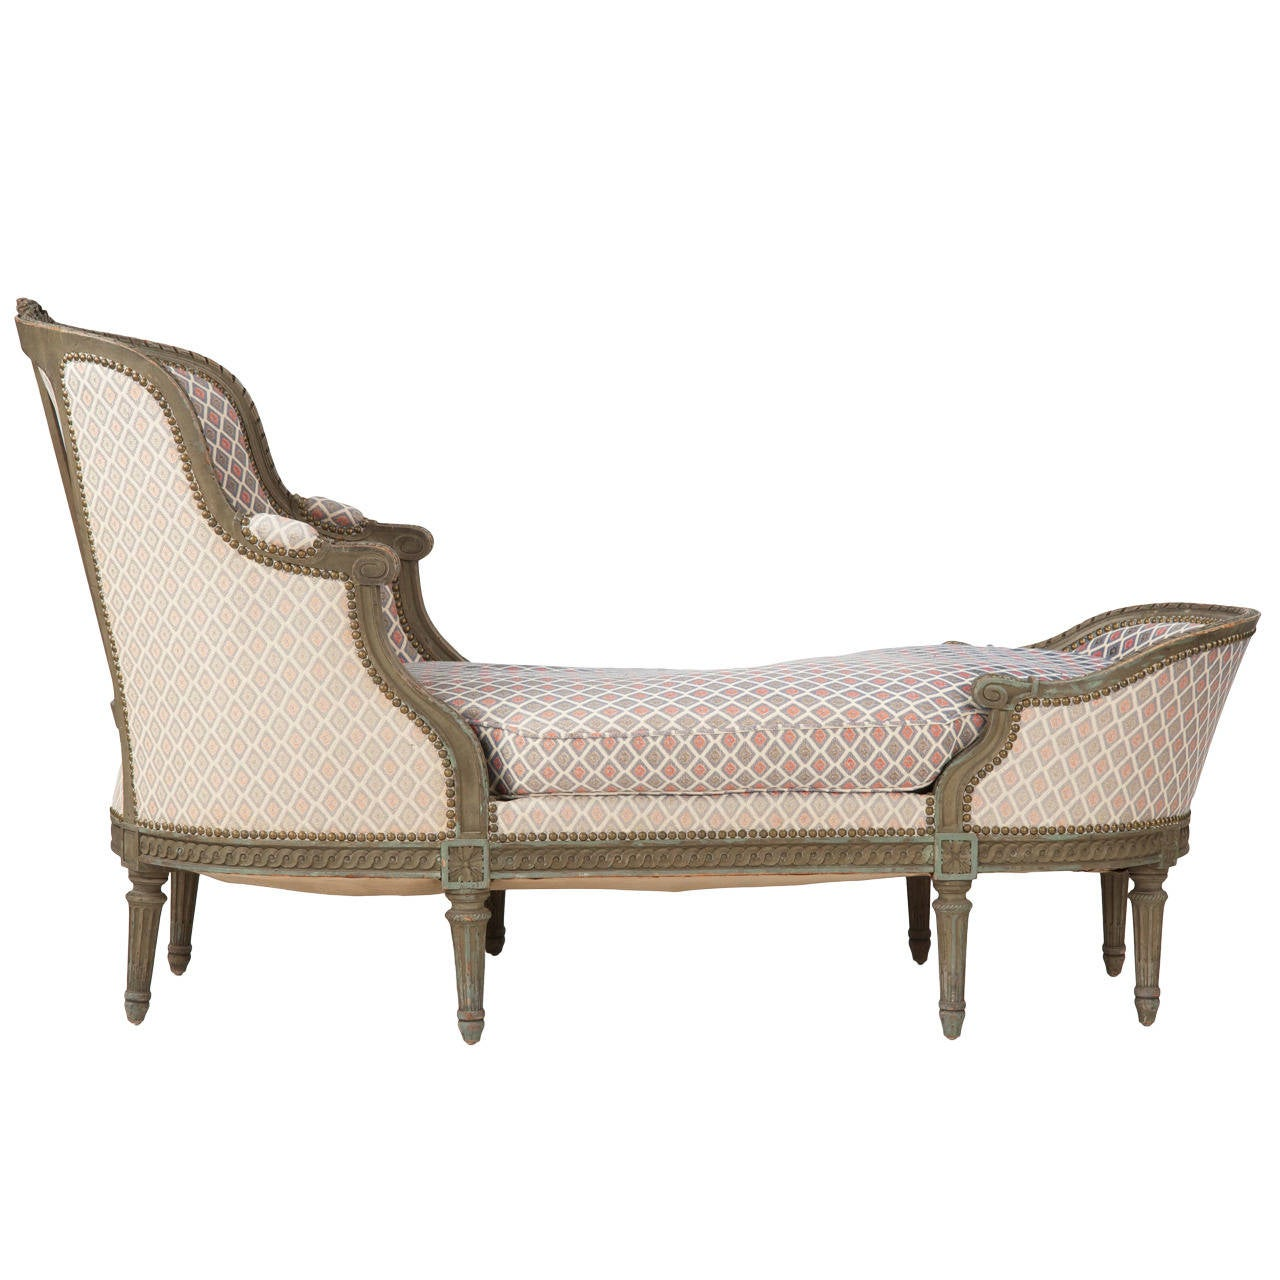 French louis xvi style painted antique chaise lounge for Chaise longue lounge